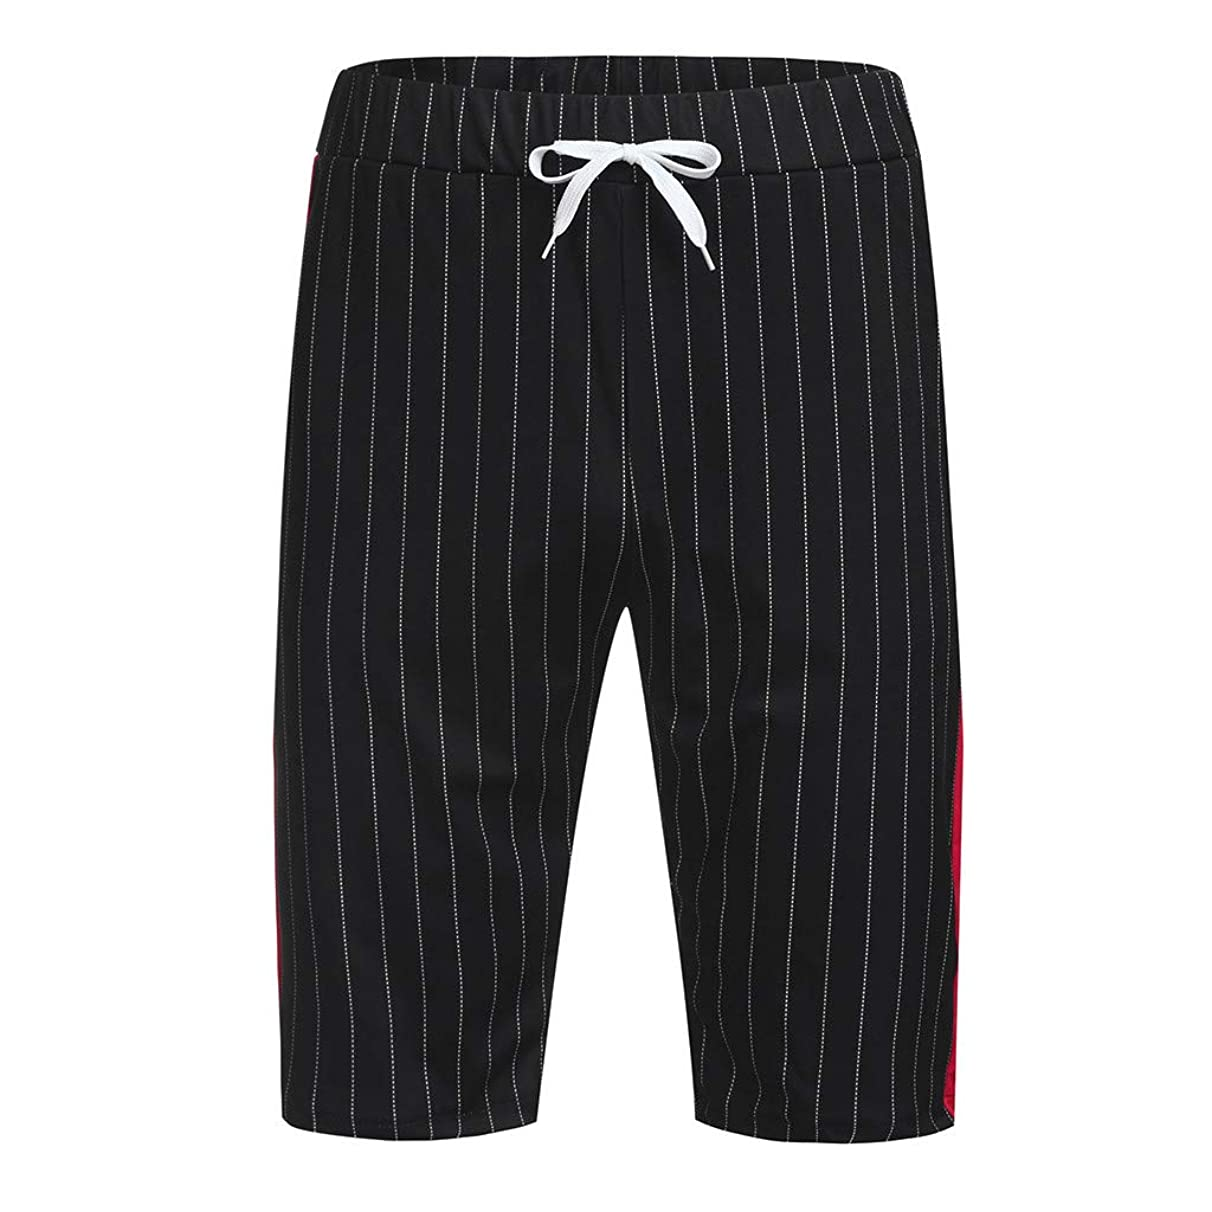 YAYUMI Mens Sports Casual Joggers Striped Patchwork Pocket Drawstring Short Pants Trouser